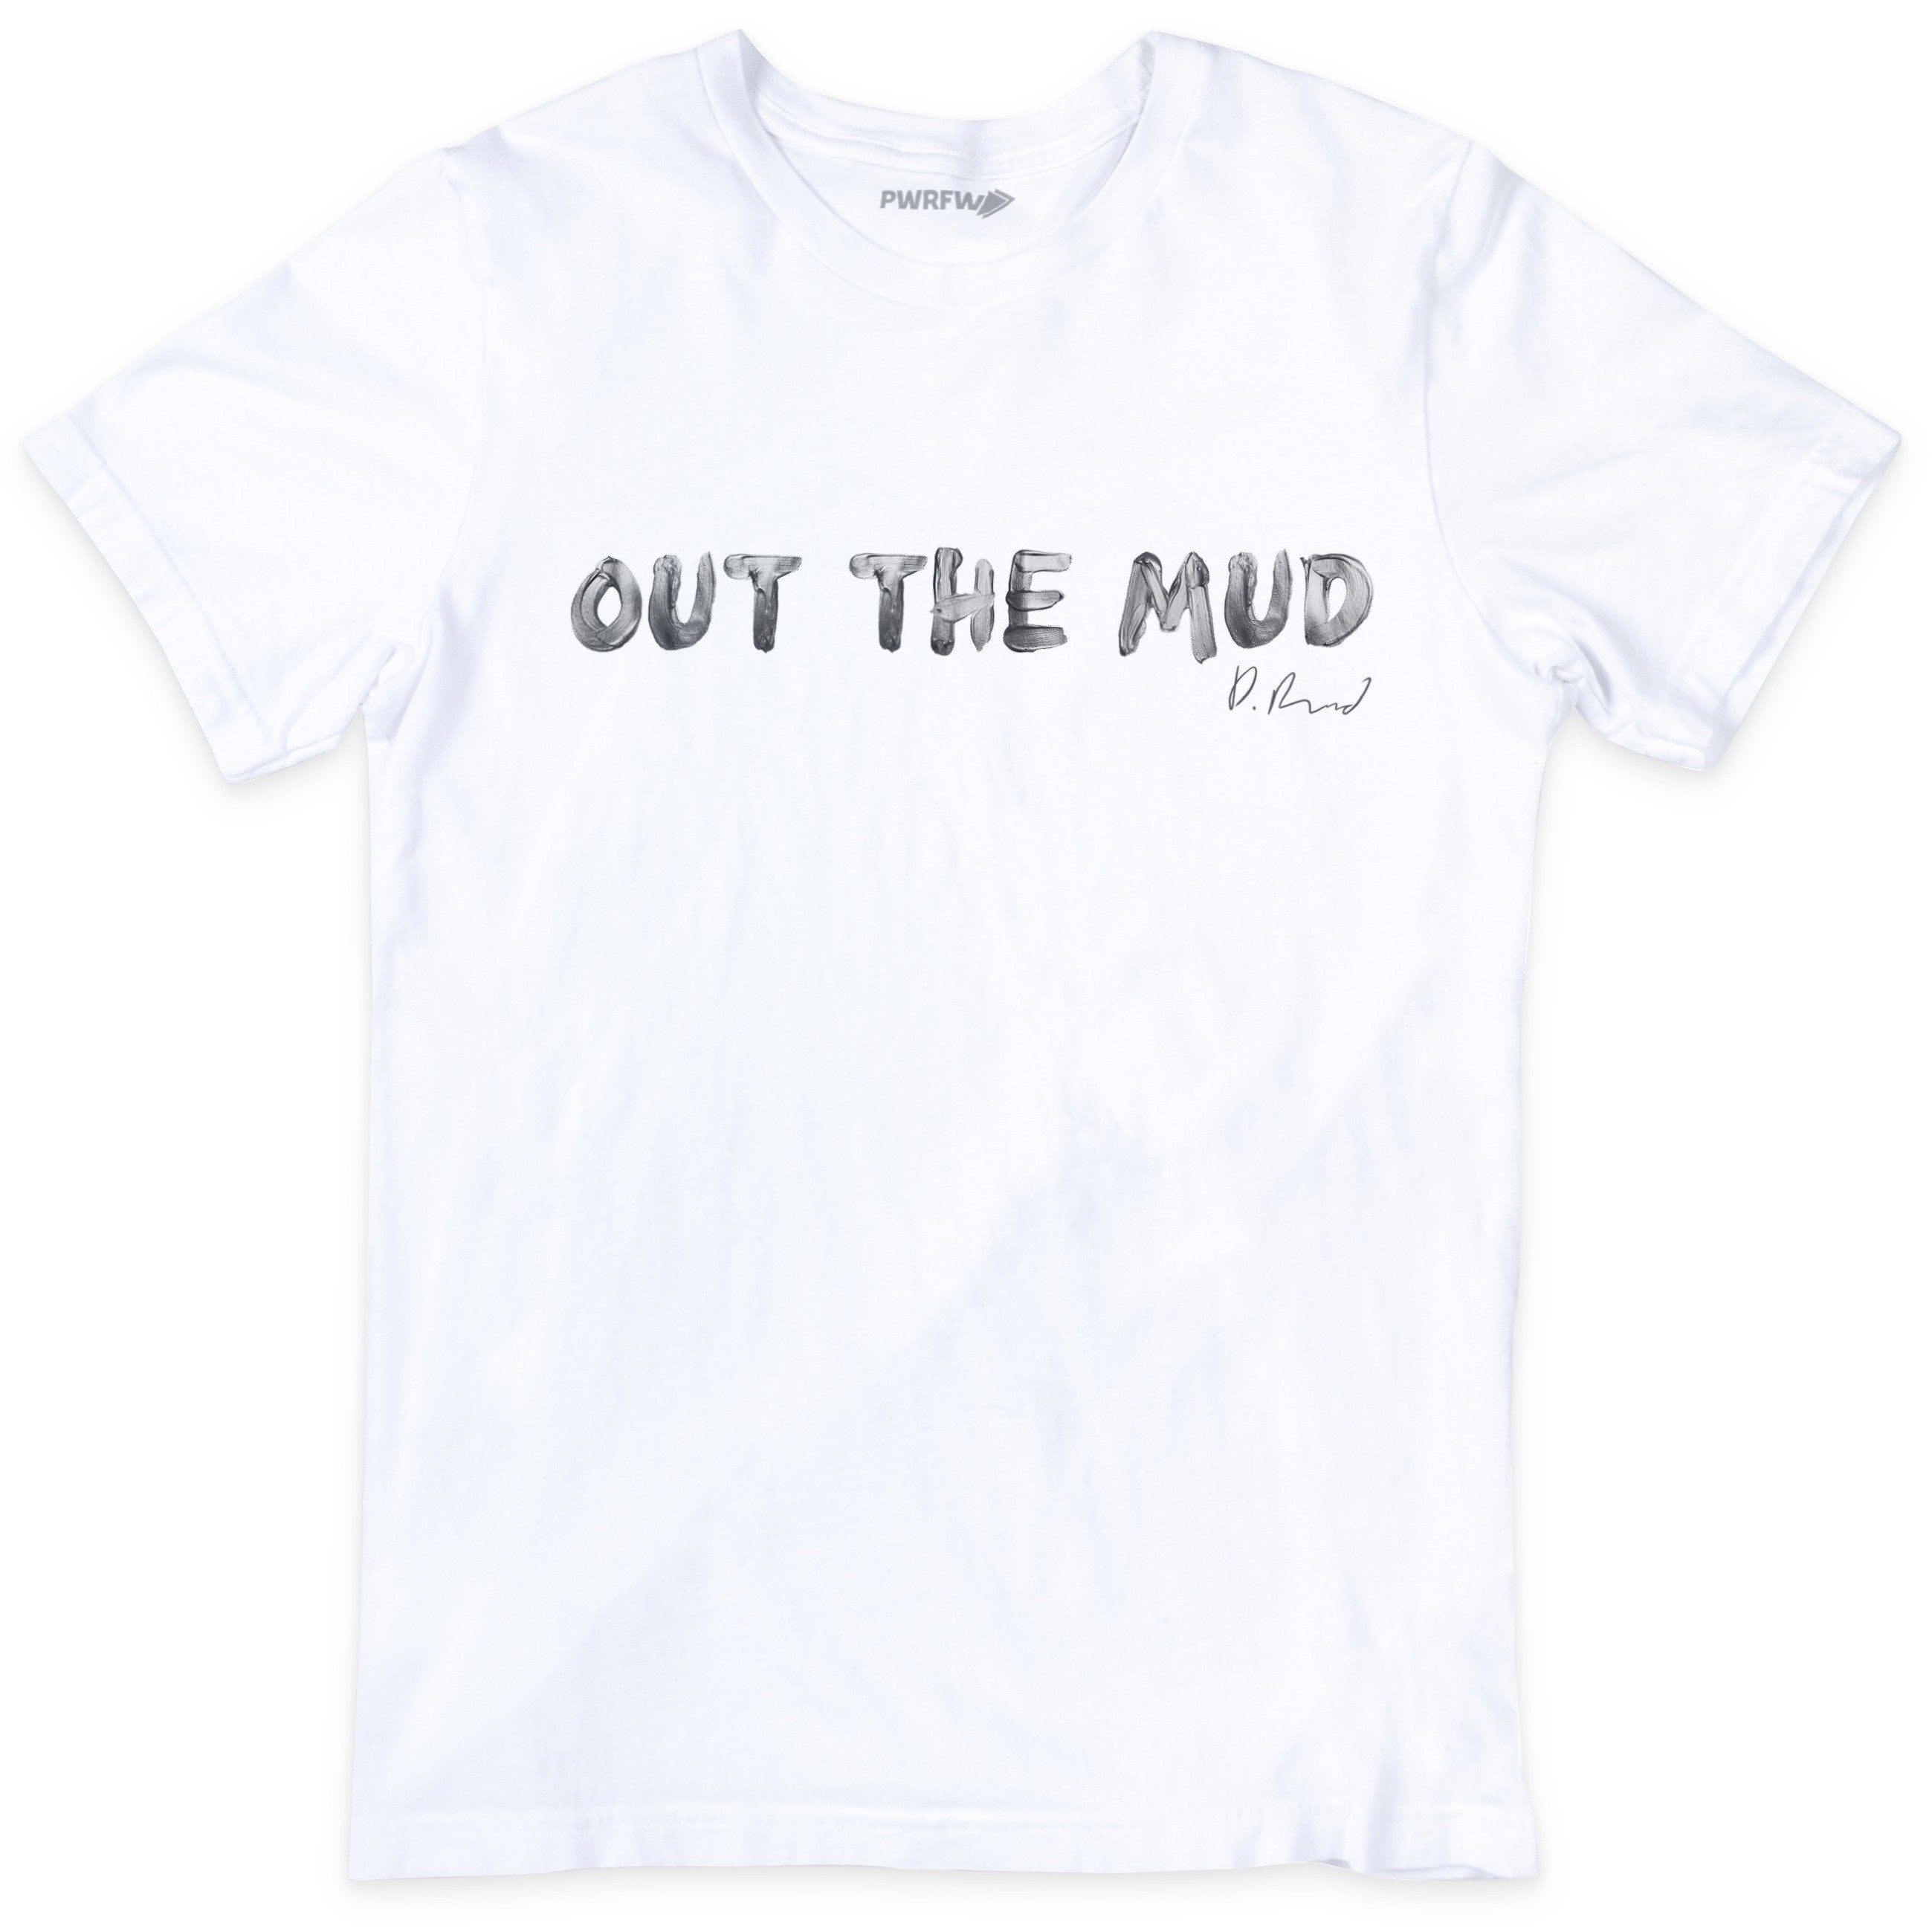 Paul Reed Out the Mud T-Shirt